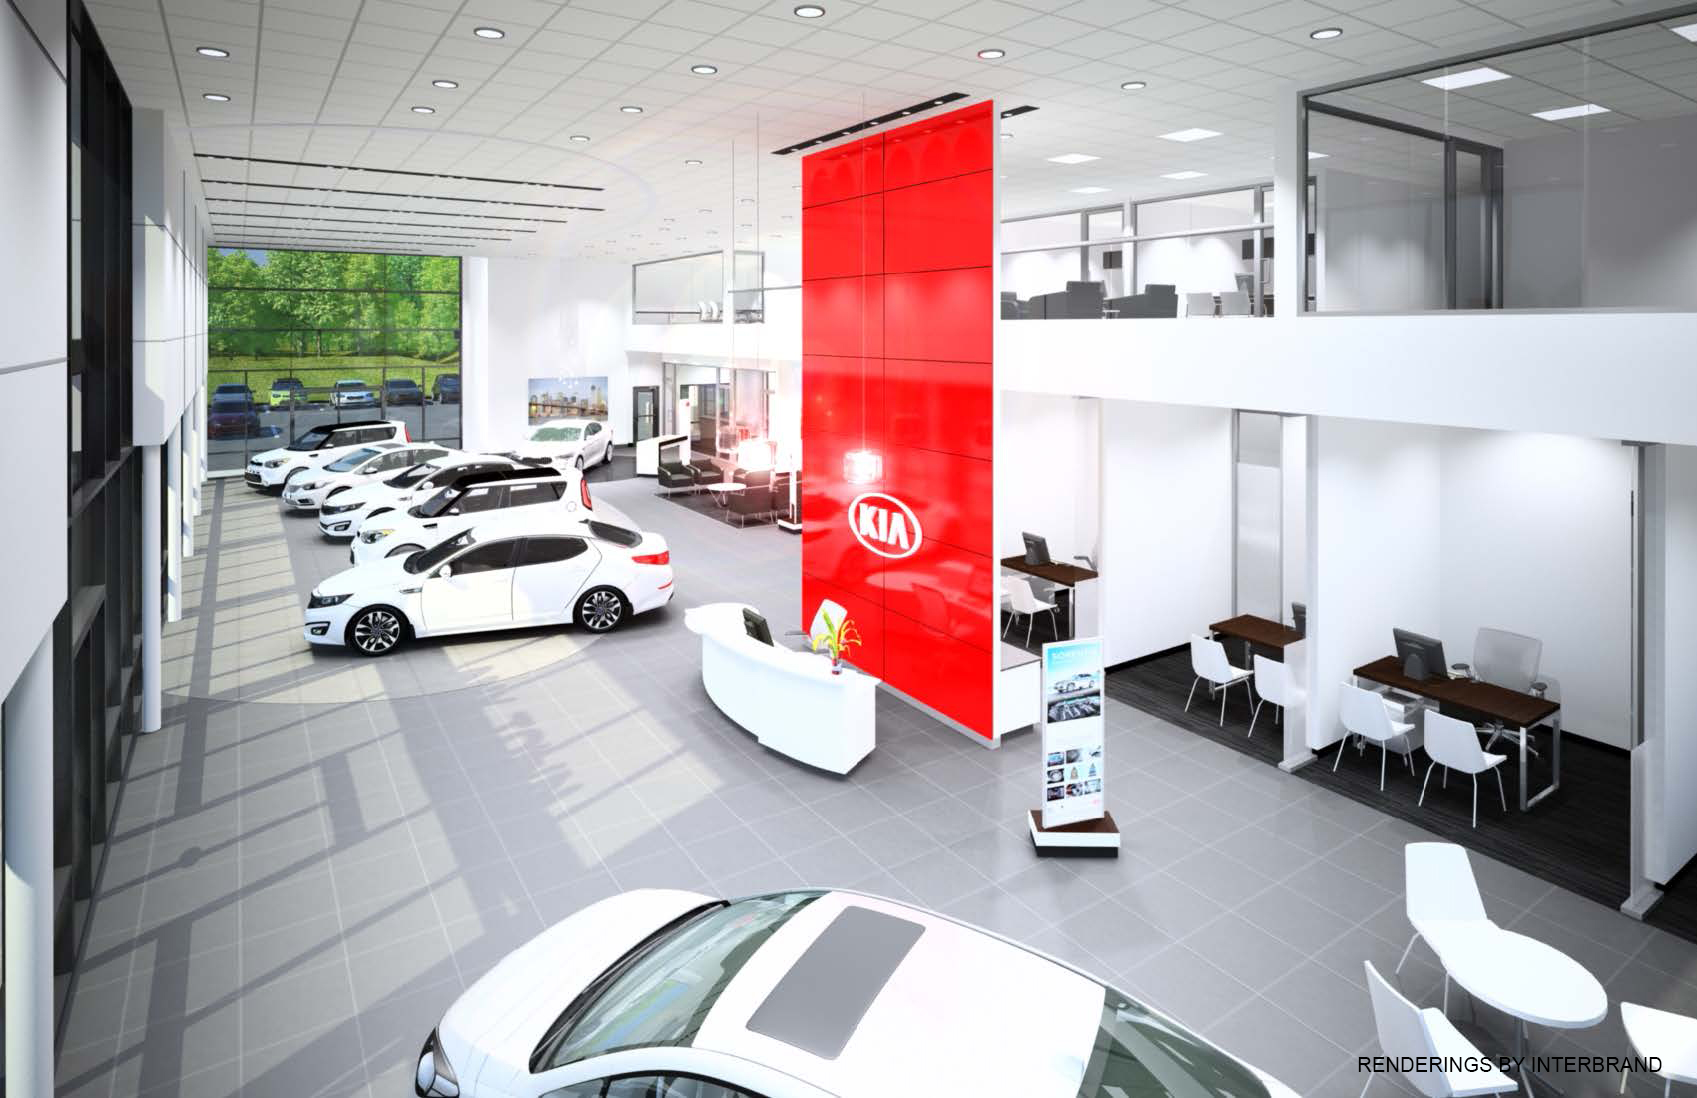 [] North Star Kia_Renderings_03.jpg